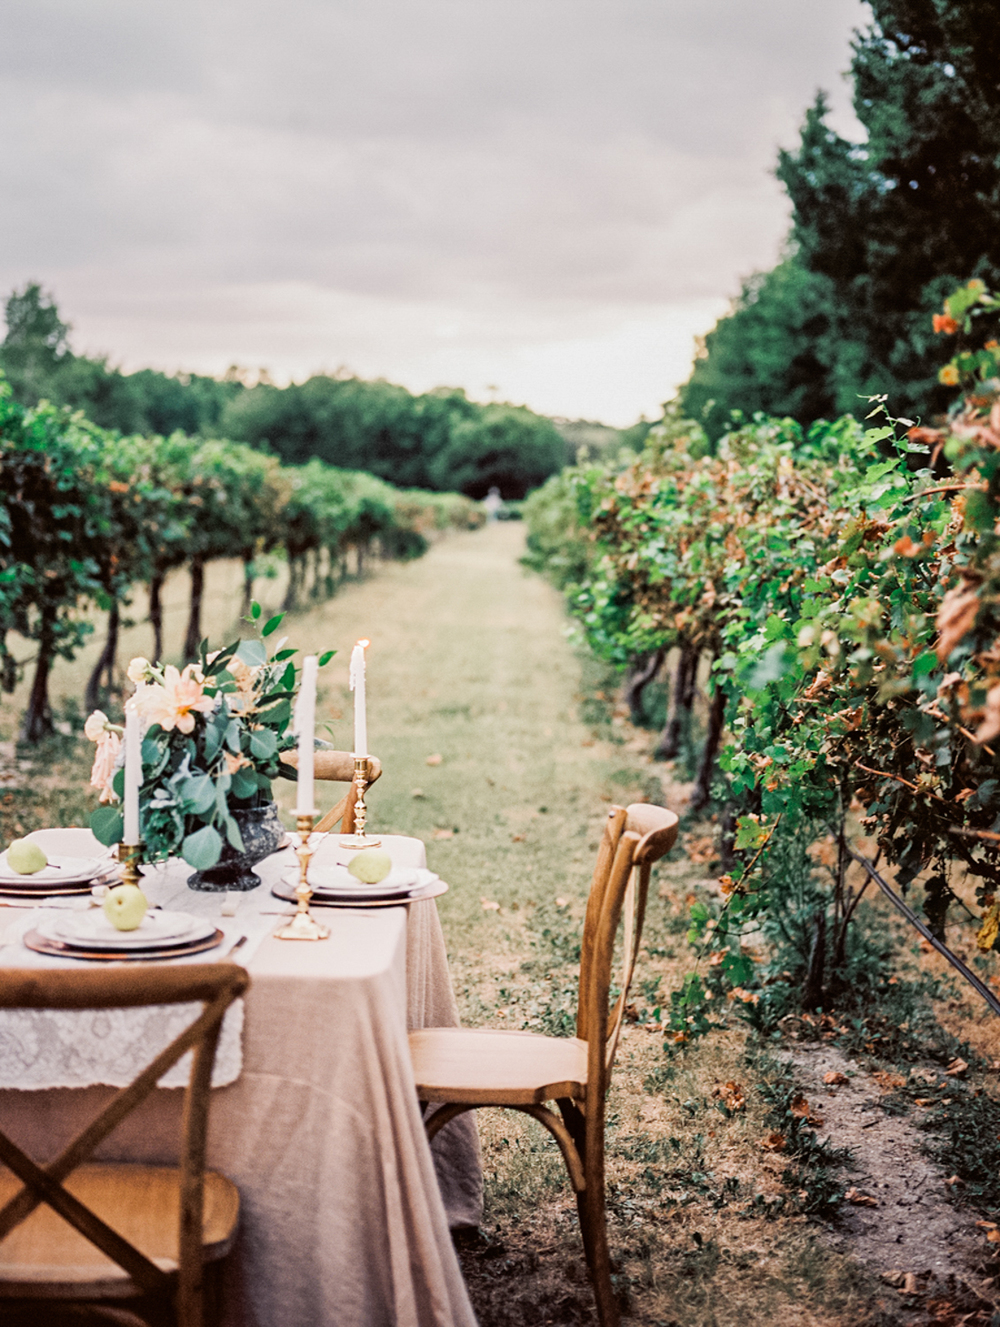 Tuscan Dream Wedding Inspiration | Danielle M. Sabol Dallas, Texas Fine Art Wedding Photographer